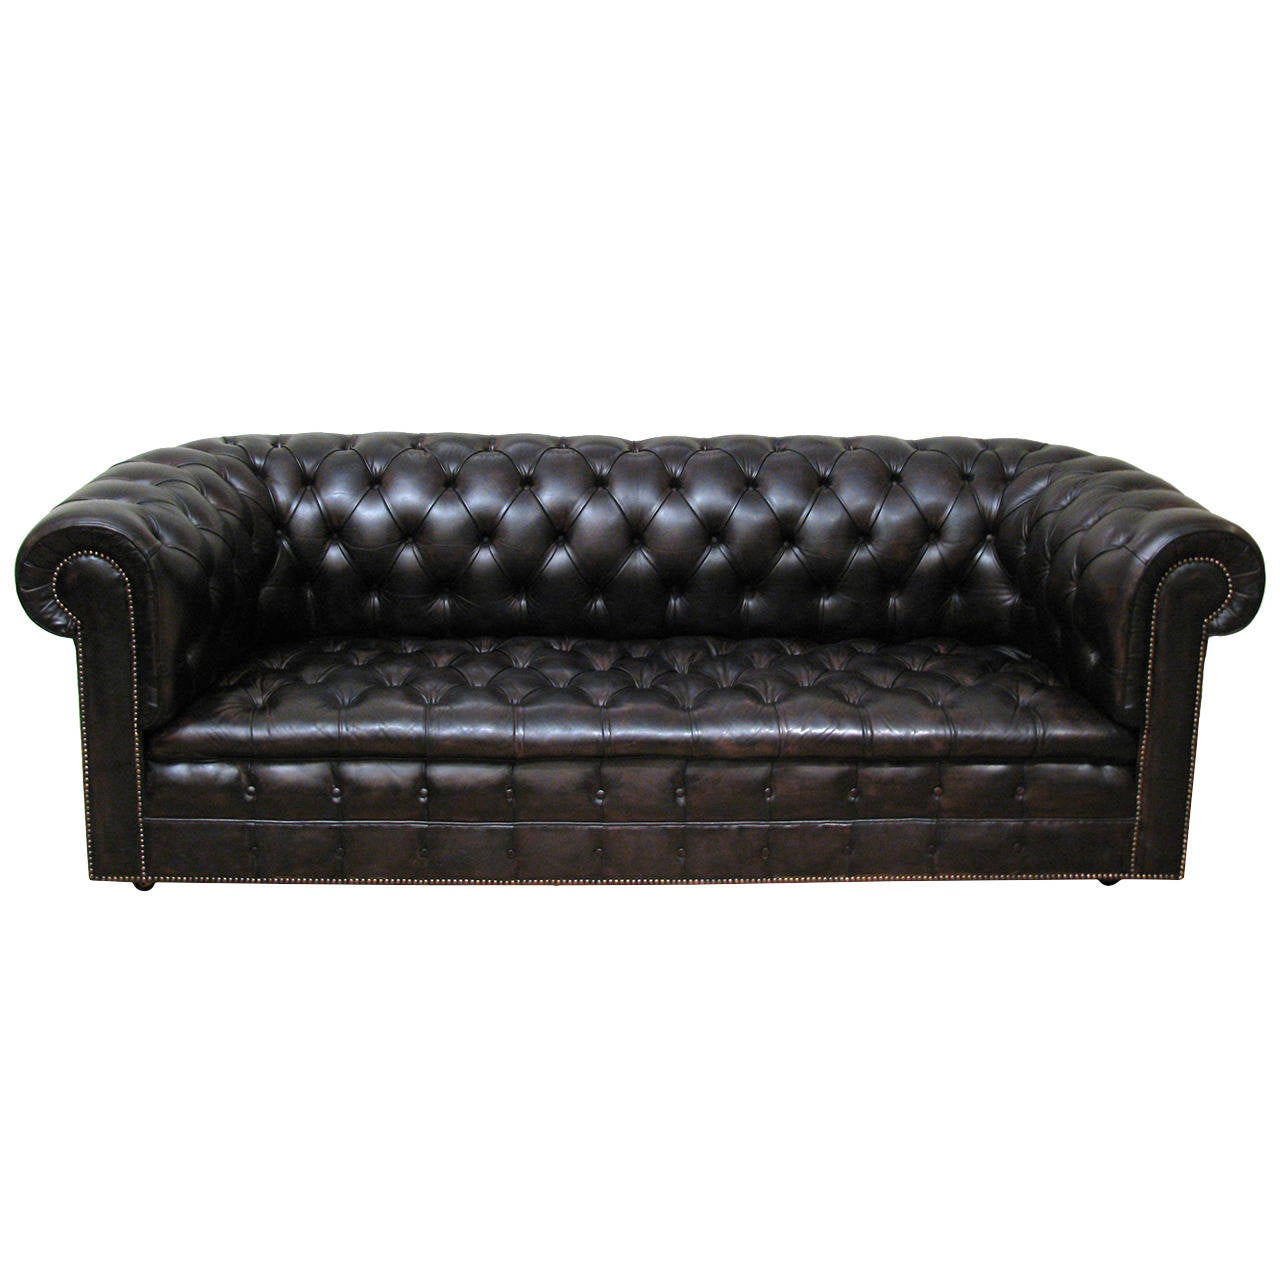 english chesterfield tufted leather sofa at 1stdibs. Black Bedroom Furniture Sets. Home Design Ideas